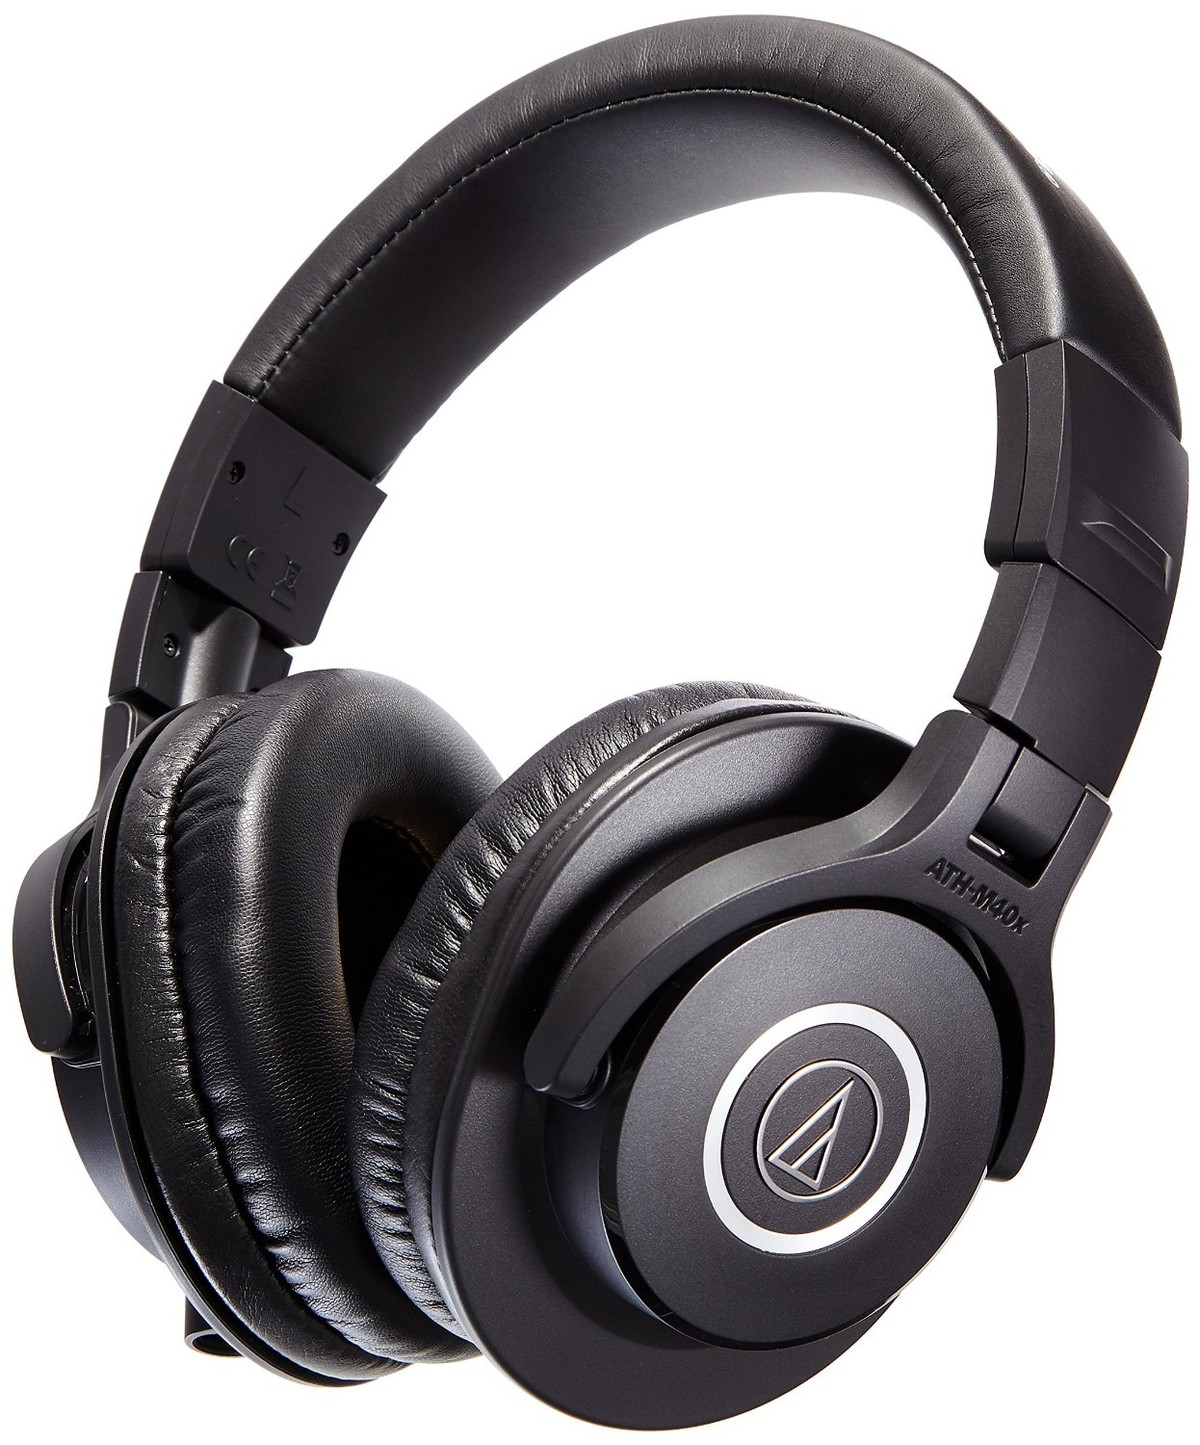 Audio Technica ATH-M40x headphones